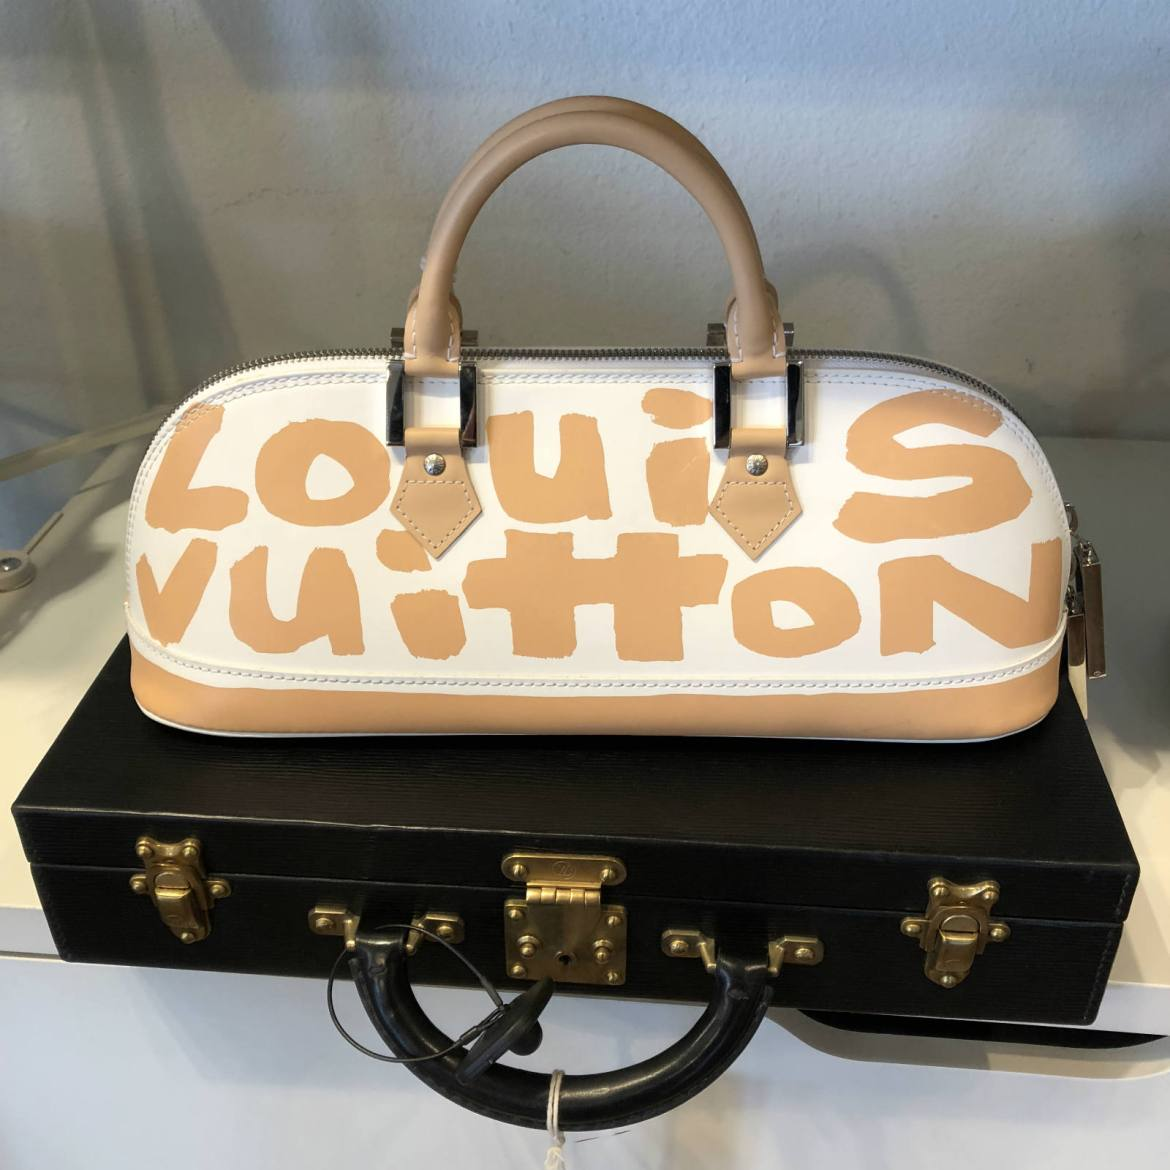 How To Identify Authentic Louis Vuitton Bags Couture Usa >> Couture Usa Catherine Ansel Remarqed